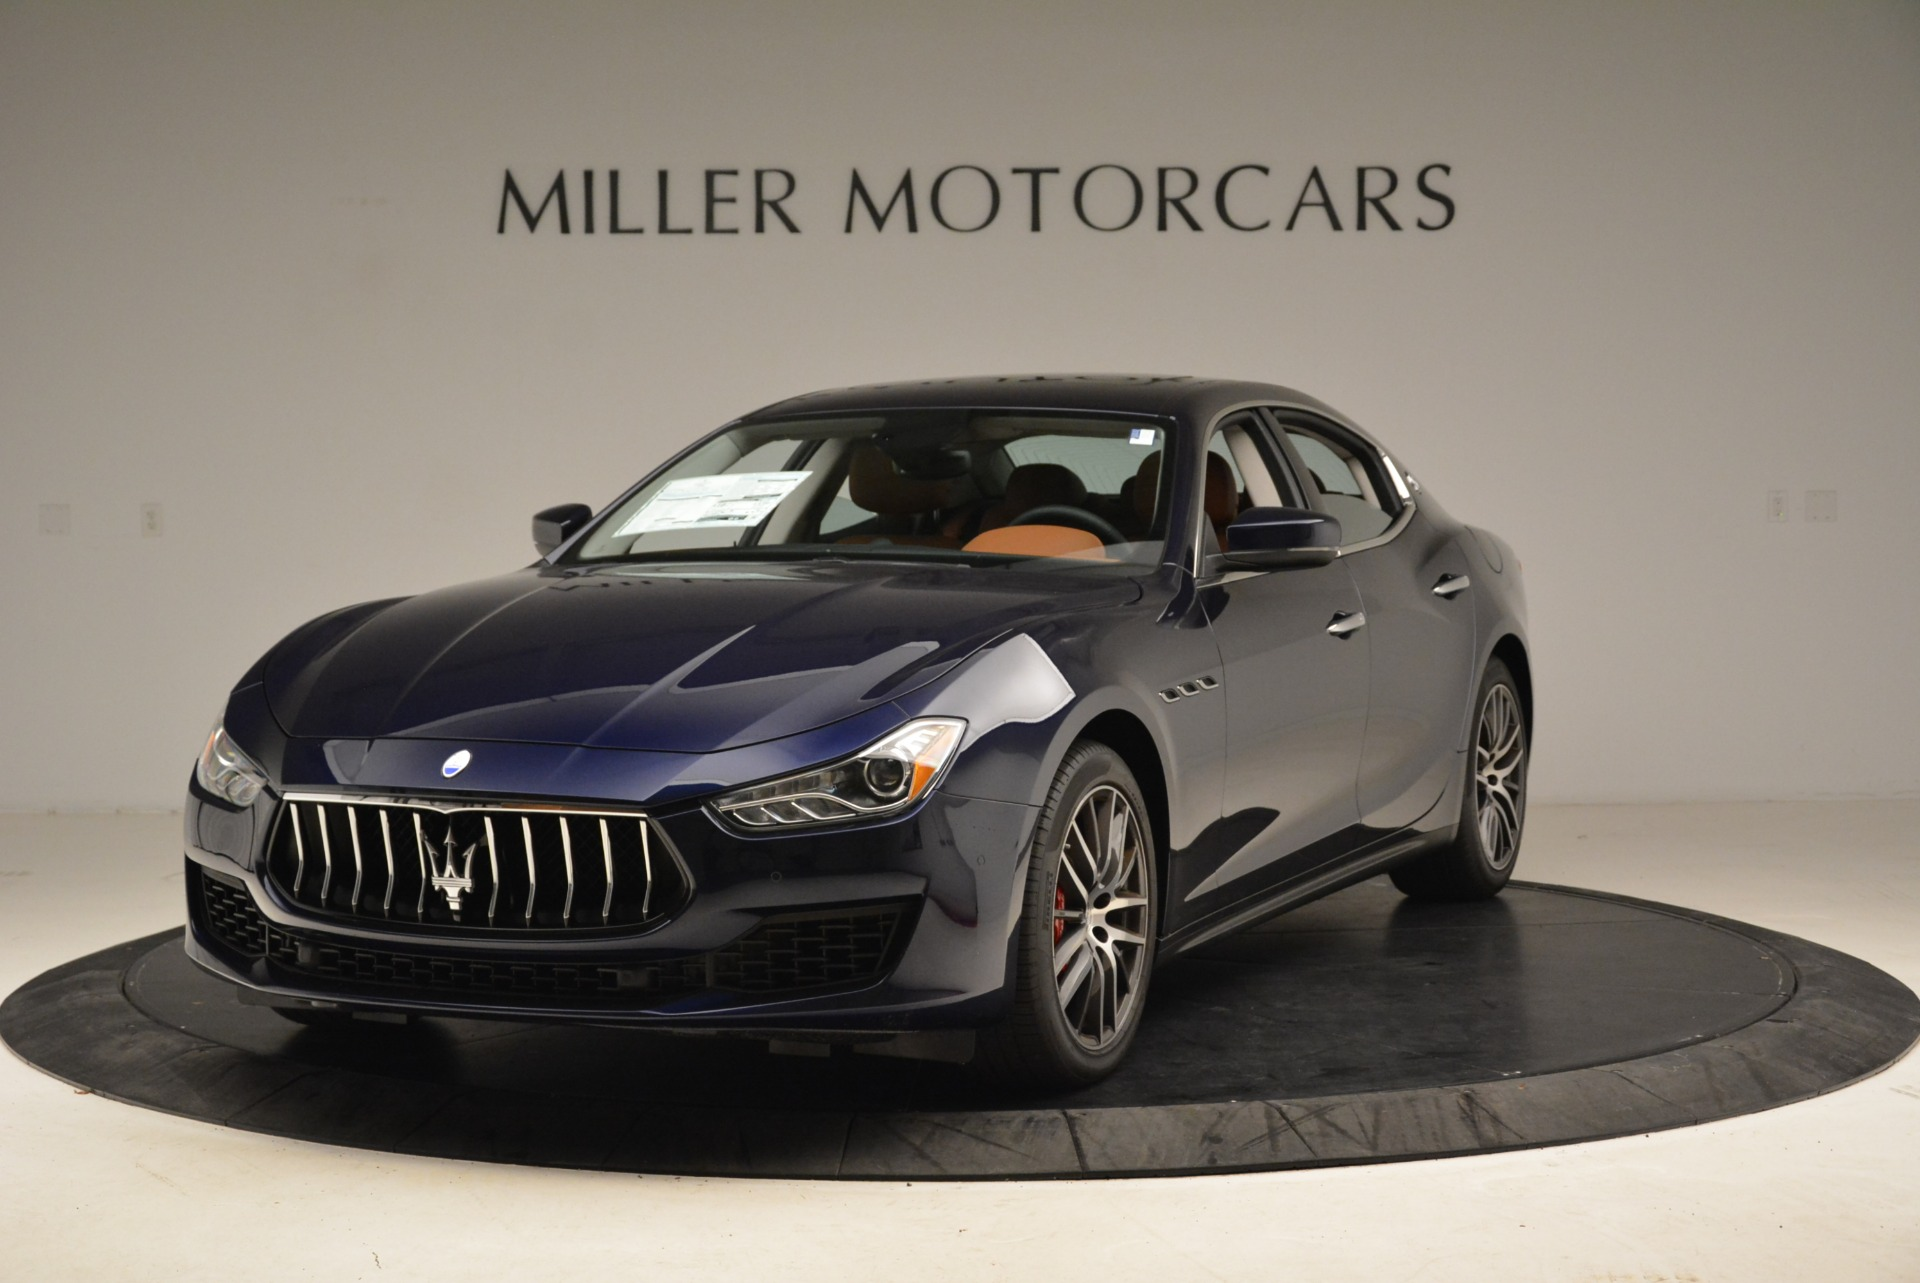 Used 2019 Maserati Ghibli S Q4 for sale Sold at Aston Martin of Greenwich in Greenwich CT 06830 1